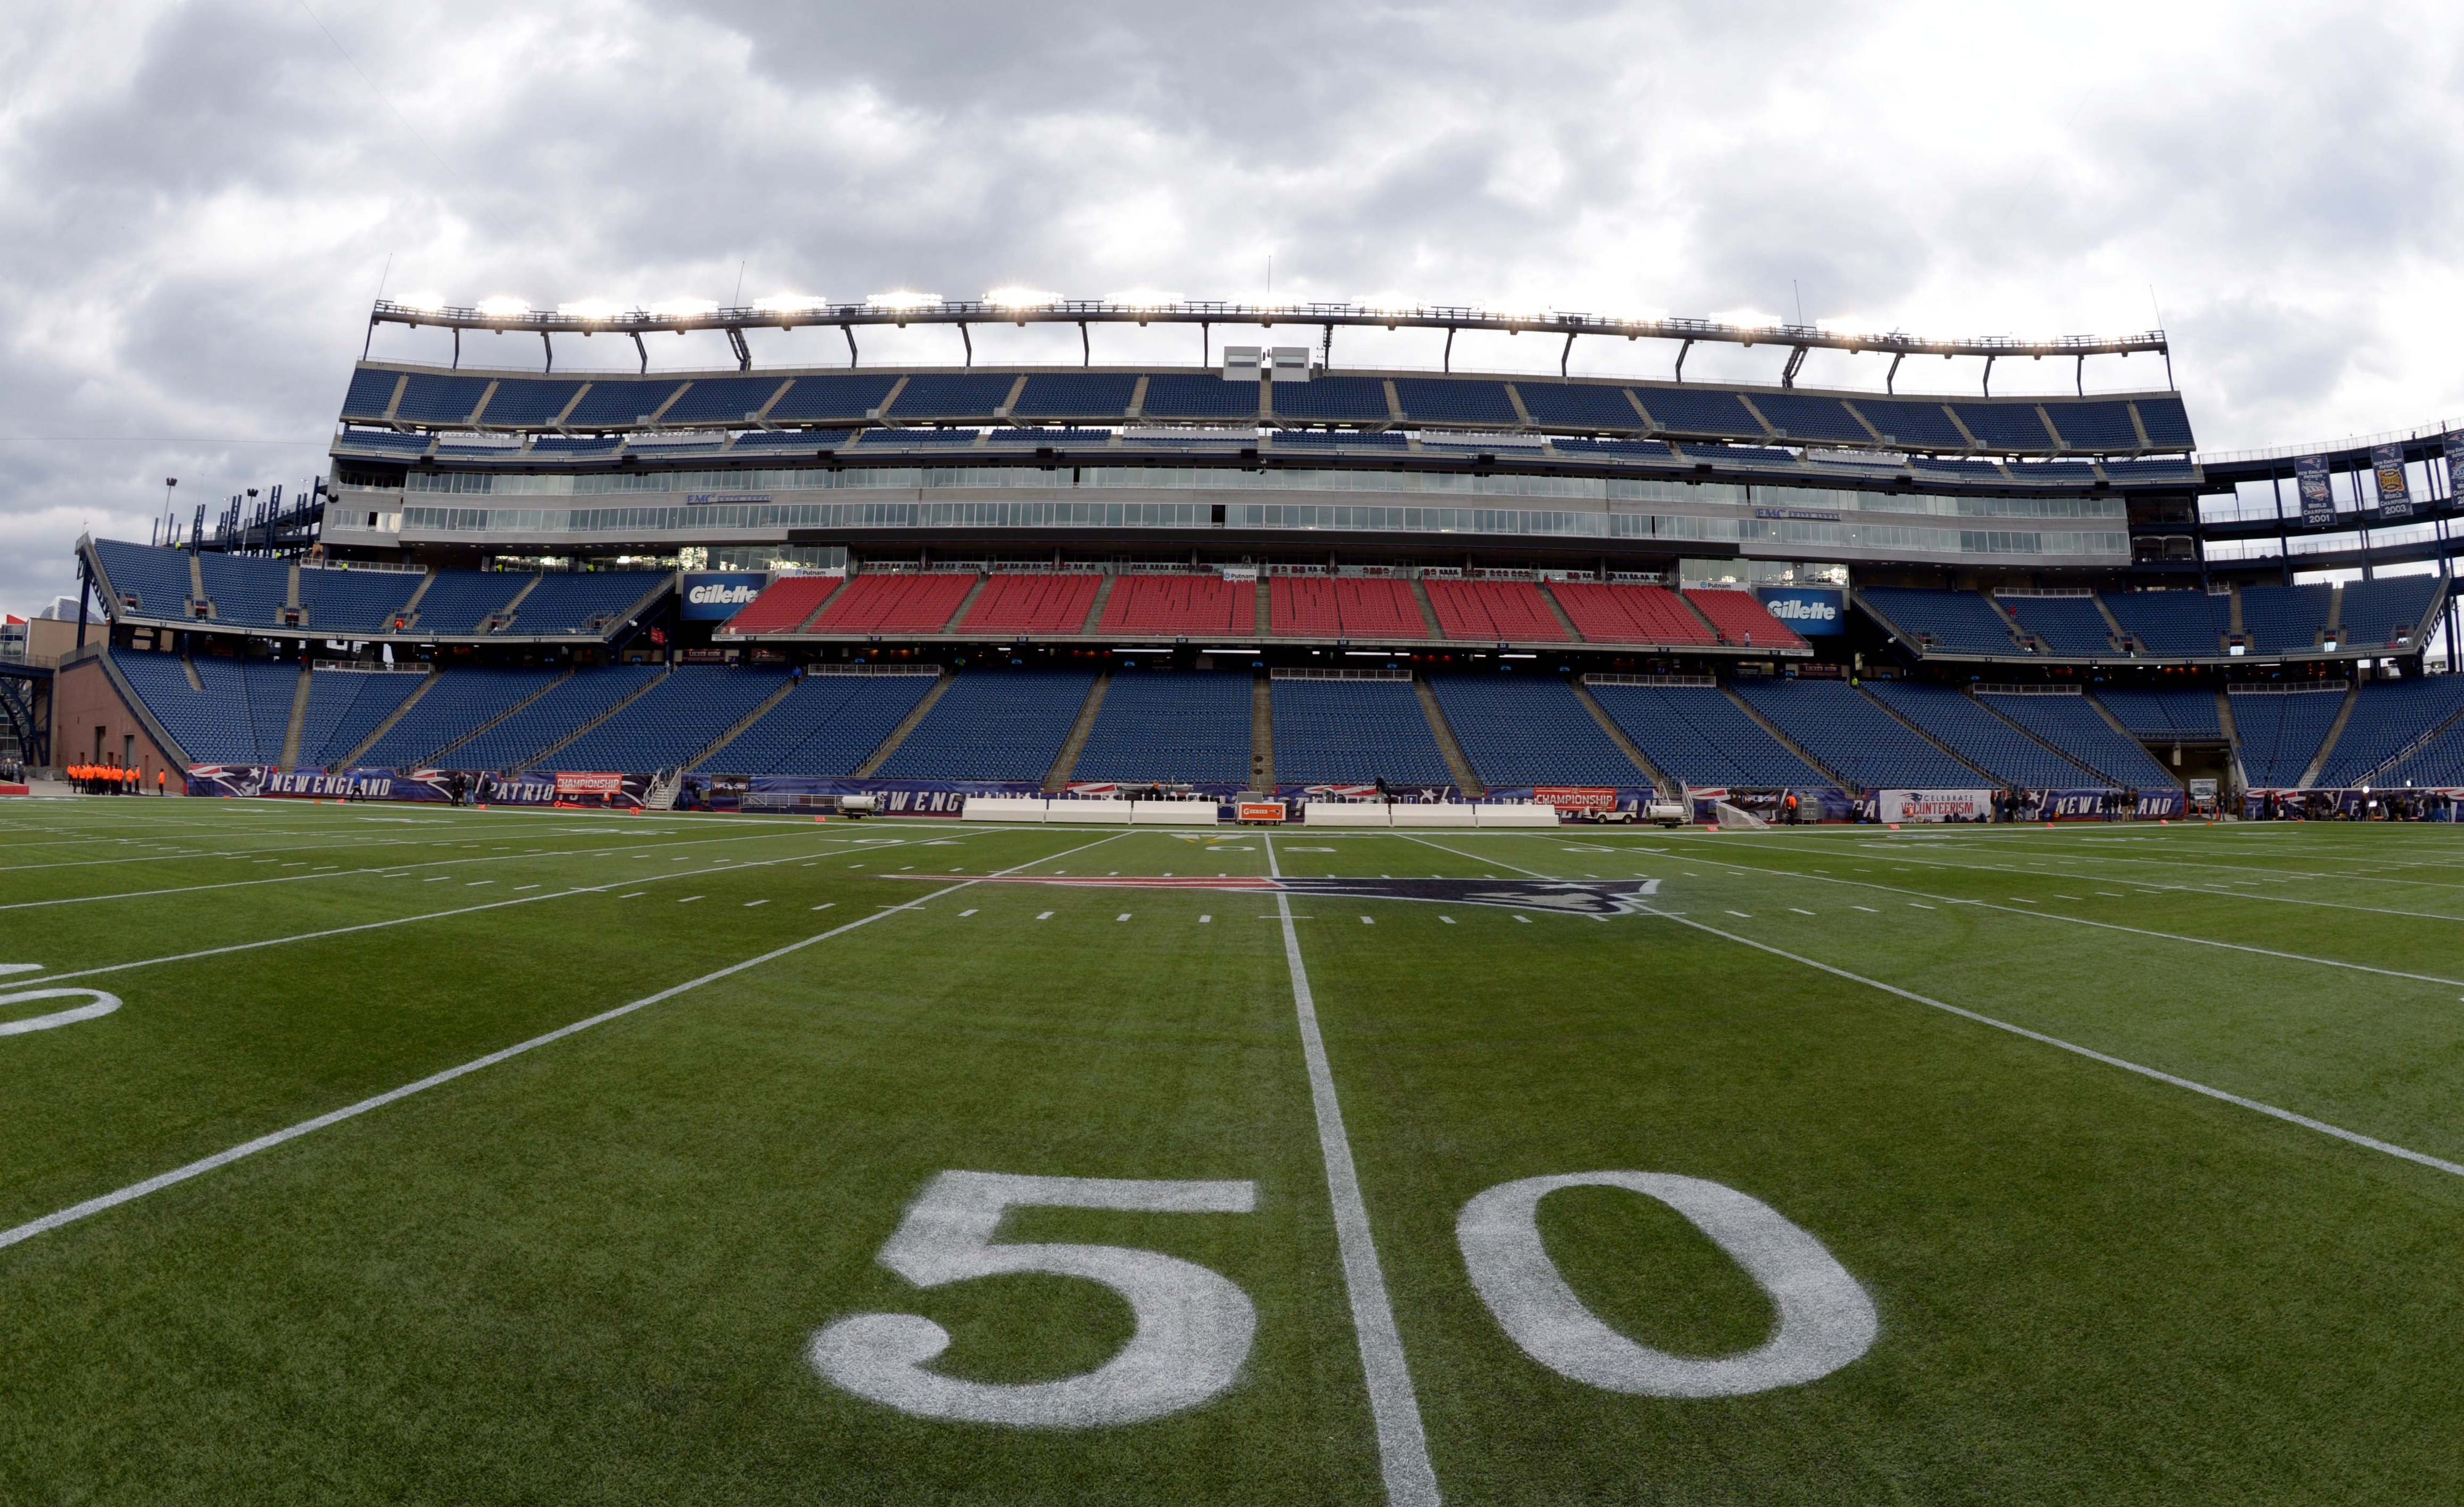 [Musberger voice] You are looking LIVE at a quarter-filled Gillette Stadium ... [Musberger voice]